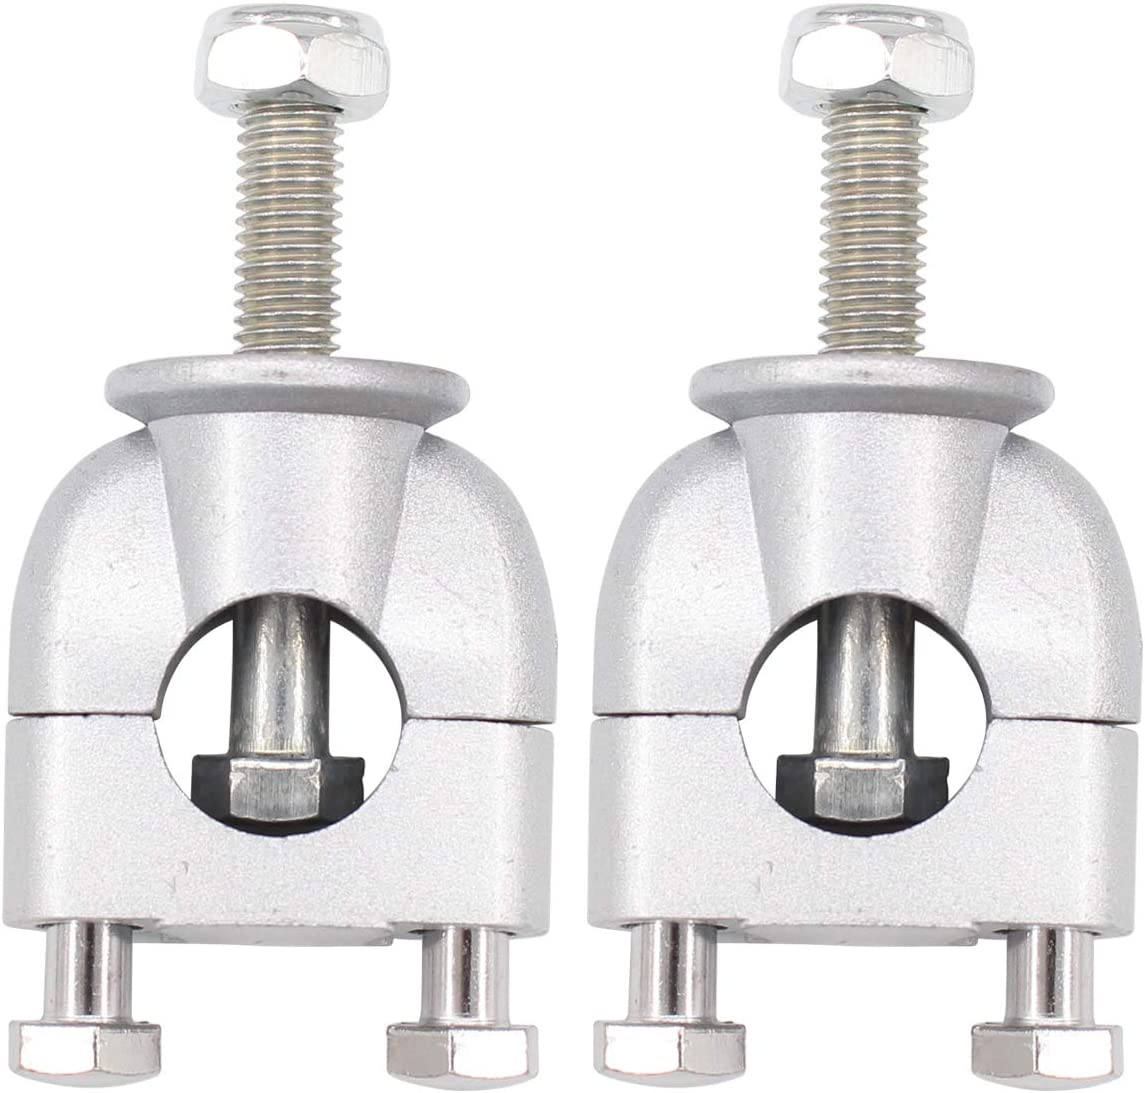 XtremeAmazing 22mm 7//8 Inch Handlebar Risers Mount Clamps for Motorcycle ATV Dirt Bike Pack of 2